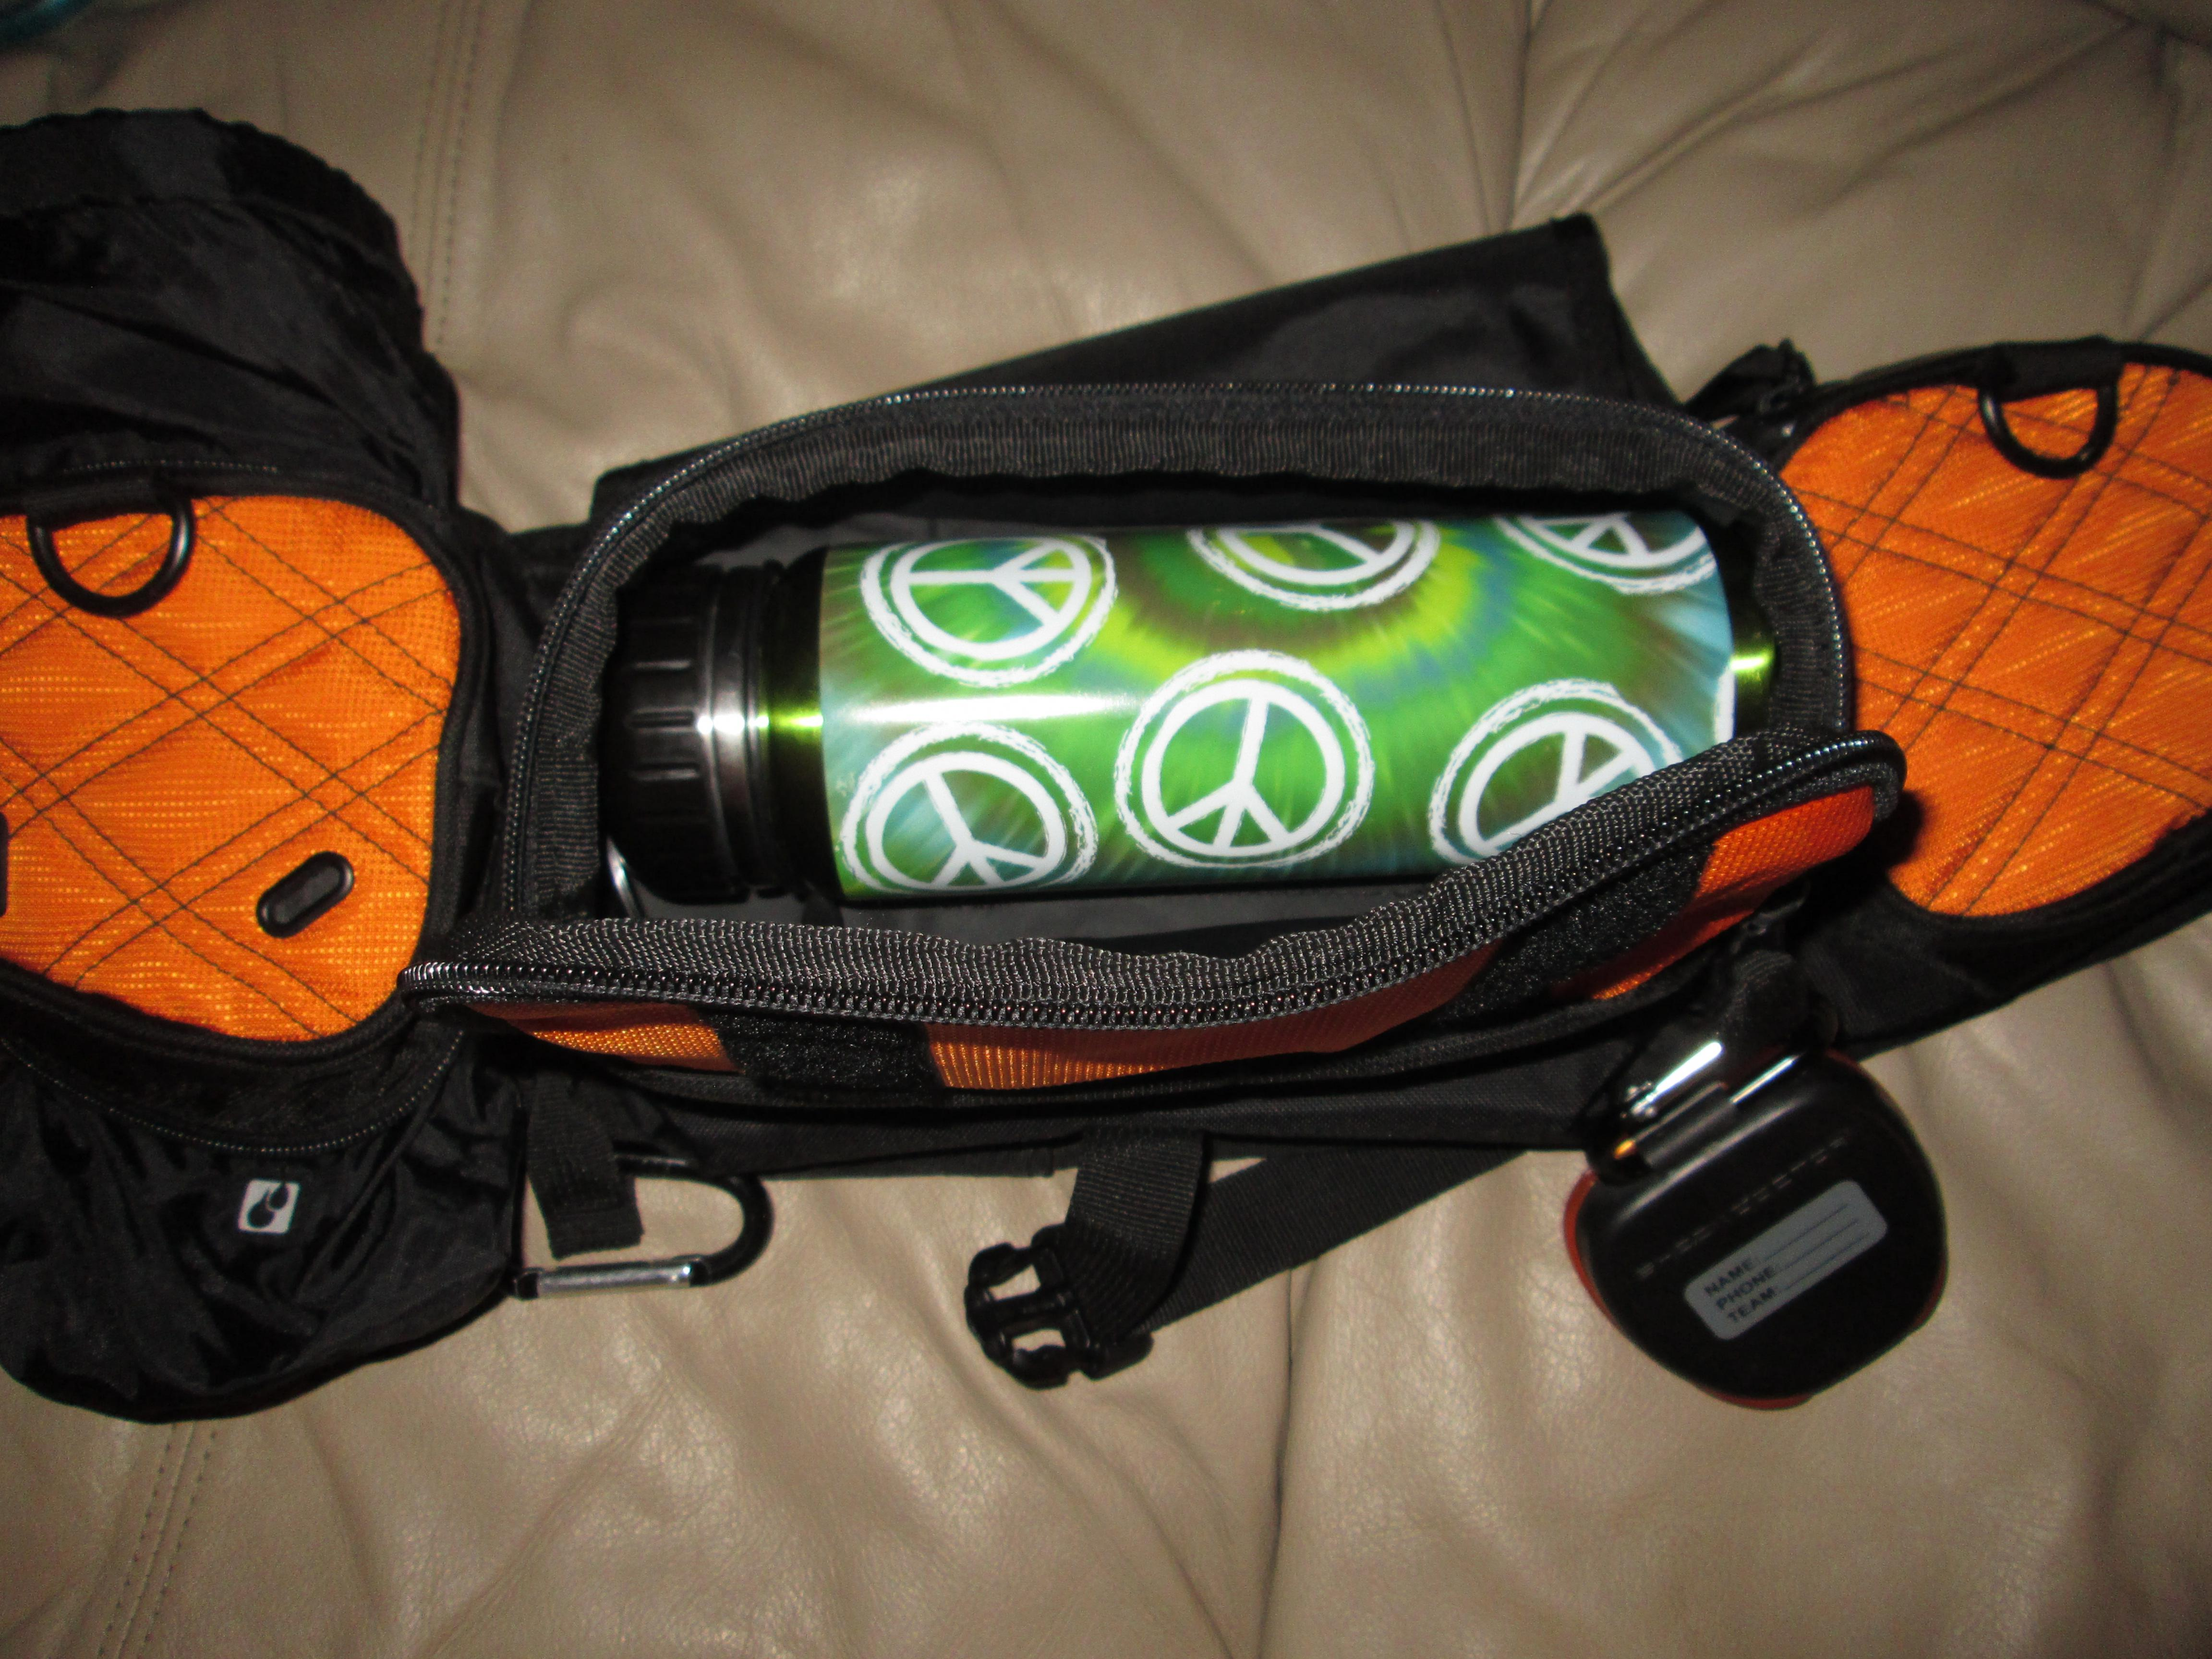 What is everyone using for storage while riding ? - Backpack or belt bag made by KTM-img_0259.jpg